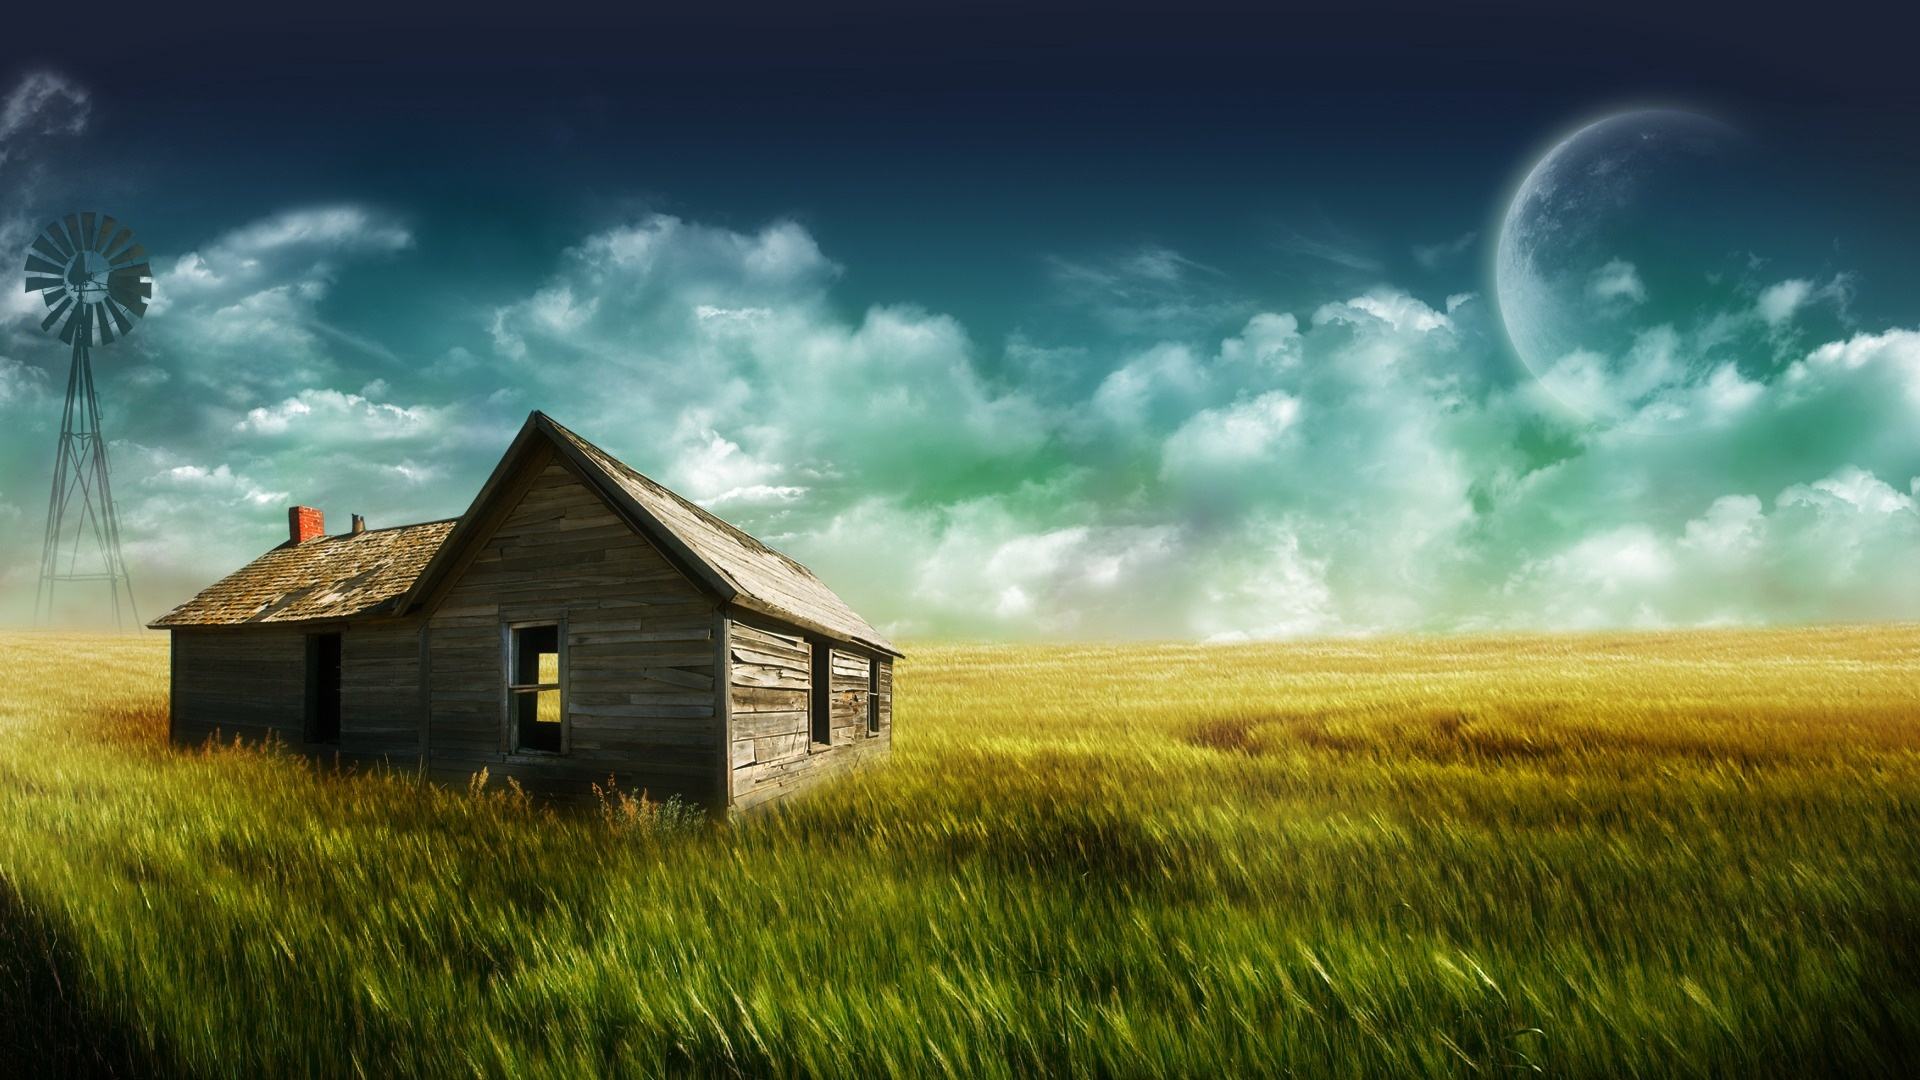 Stunning Dreamy and Fantasy House Wallpaper in a Green Field